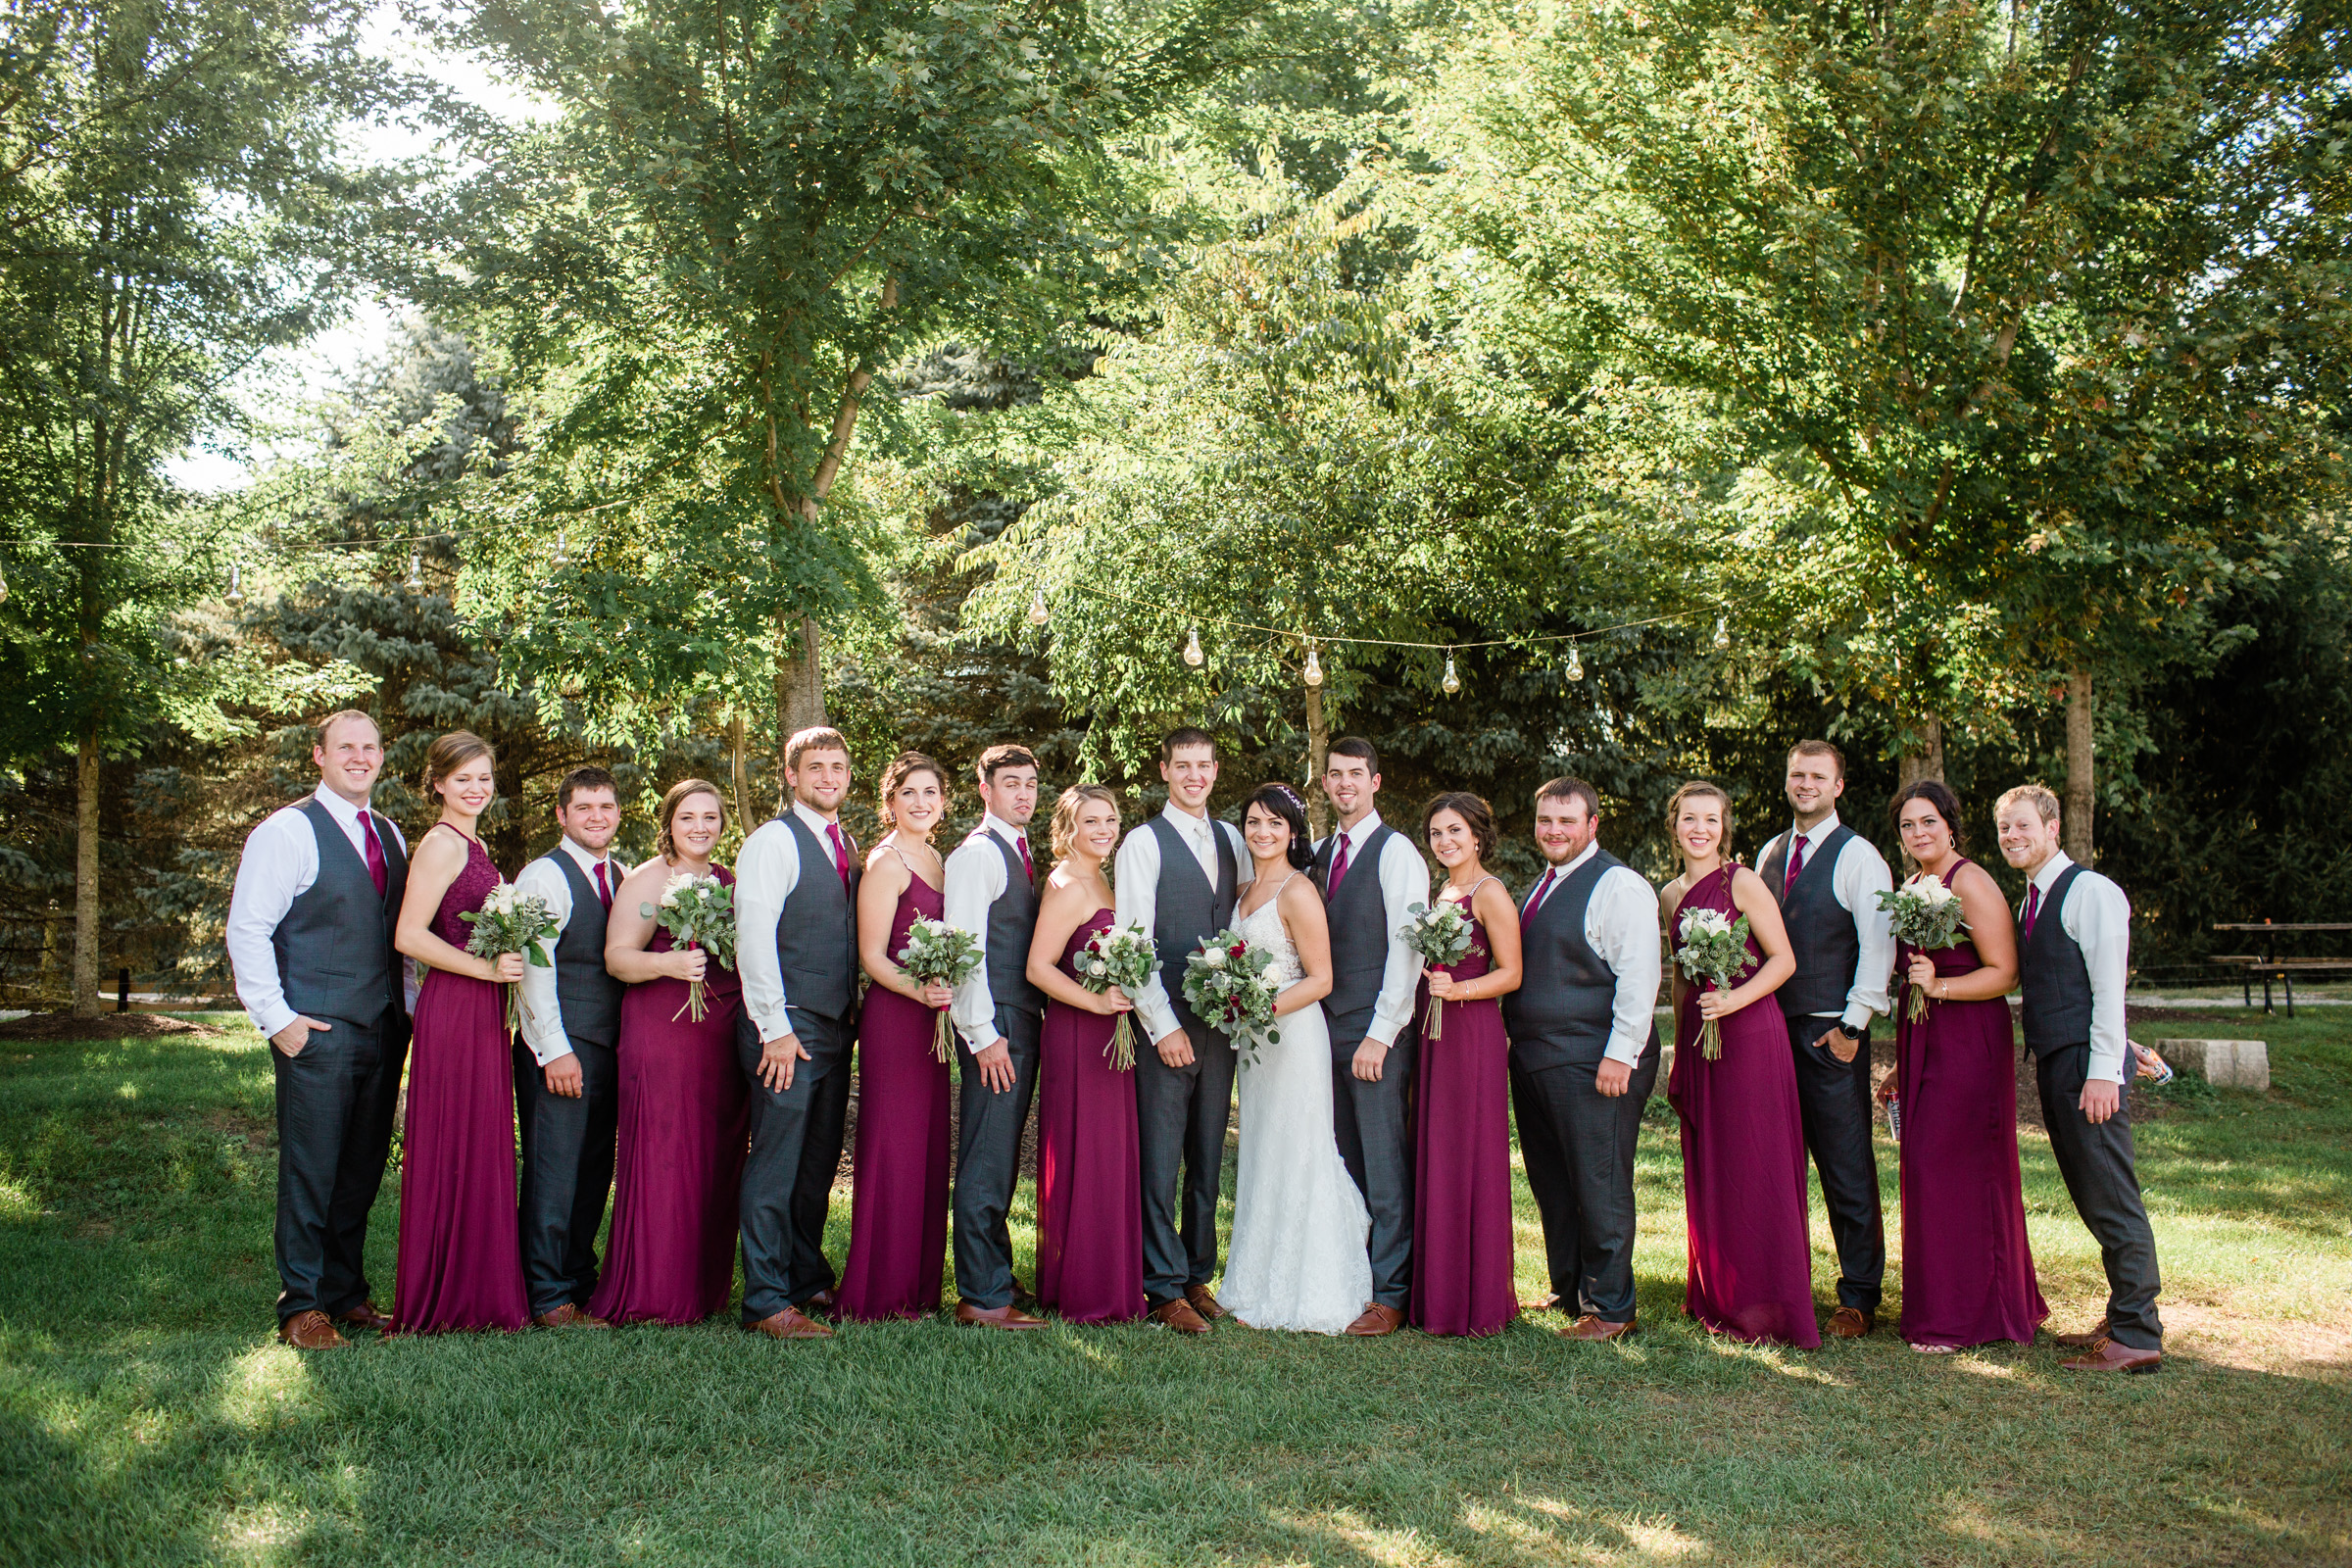 wedding party photos at Prairie Moon Winery in Ames Iowa